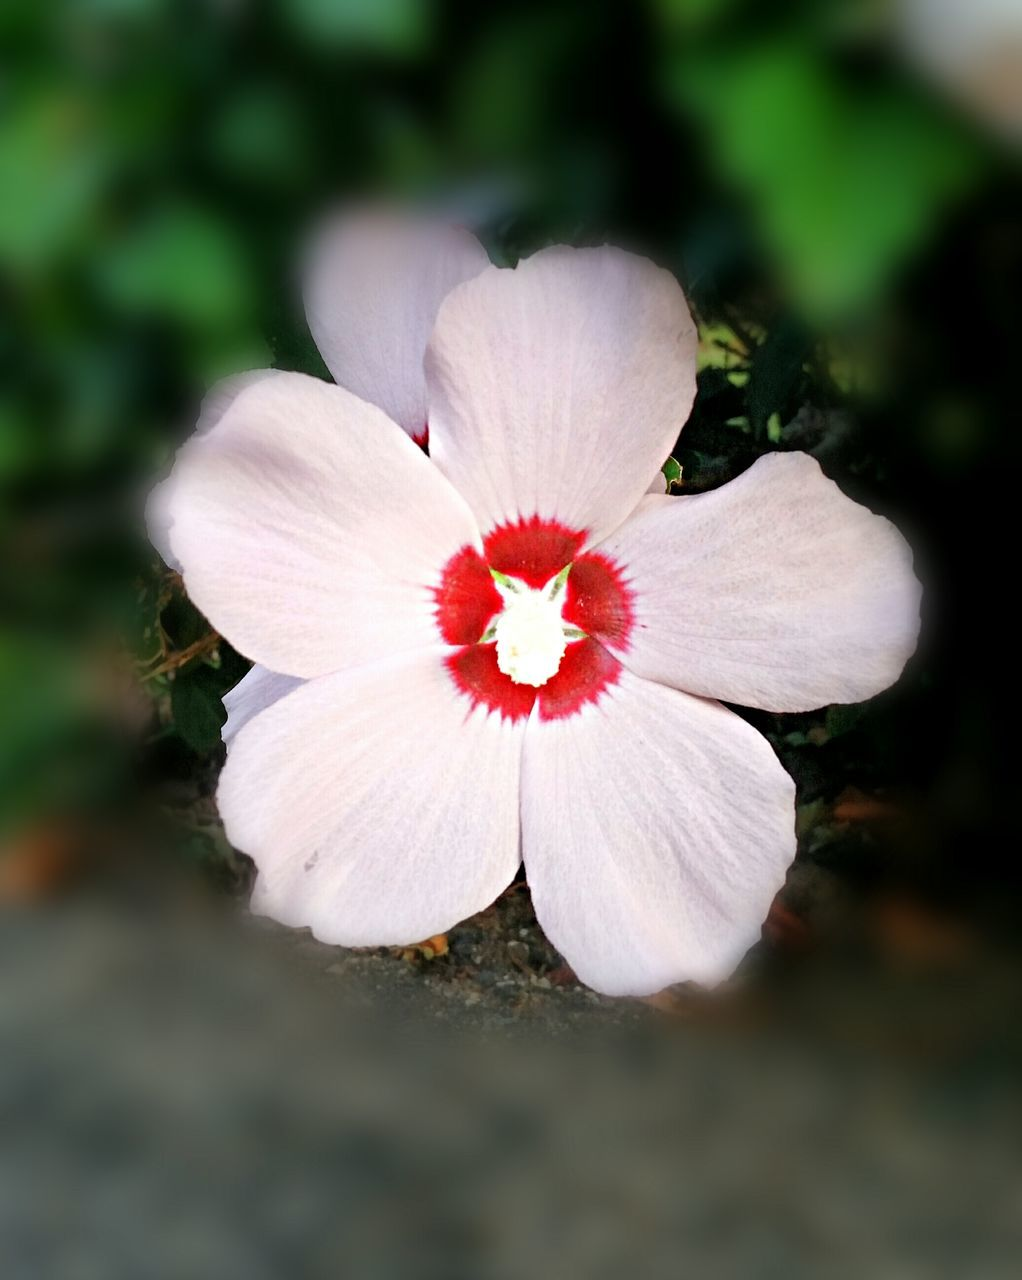 flower, petal, flower head, fragility, nature, growth, white color, beauty in nature, no people, close-up, day, freshness, outdoors, plant, blooming, hibiscus